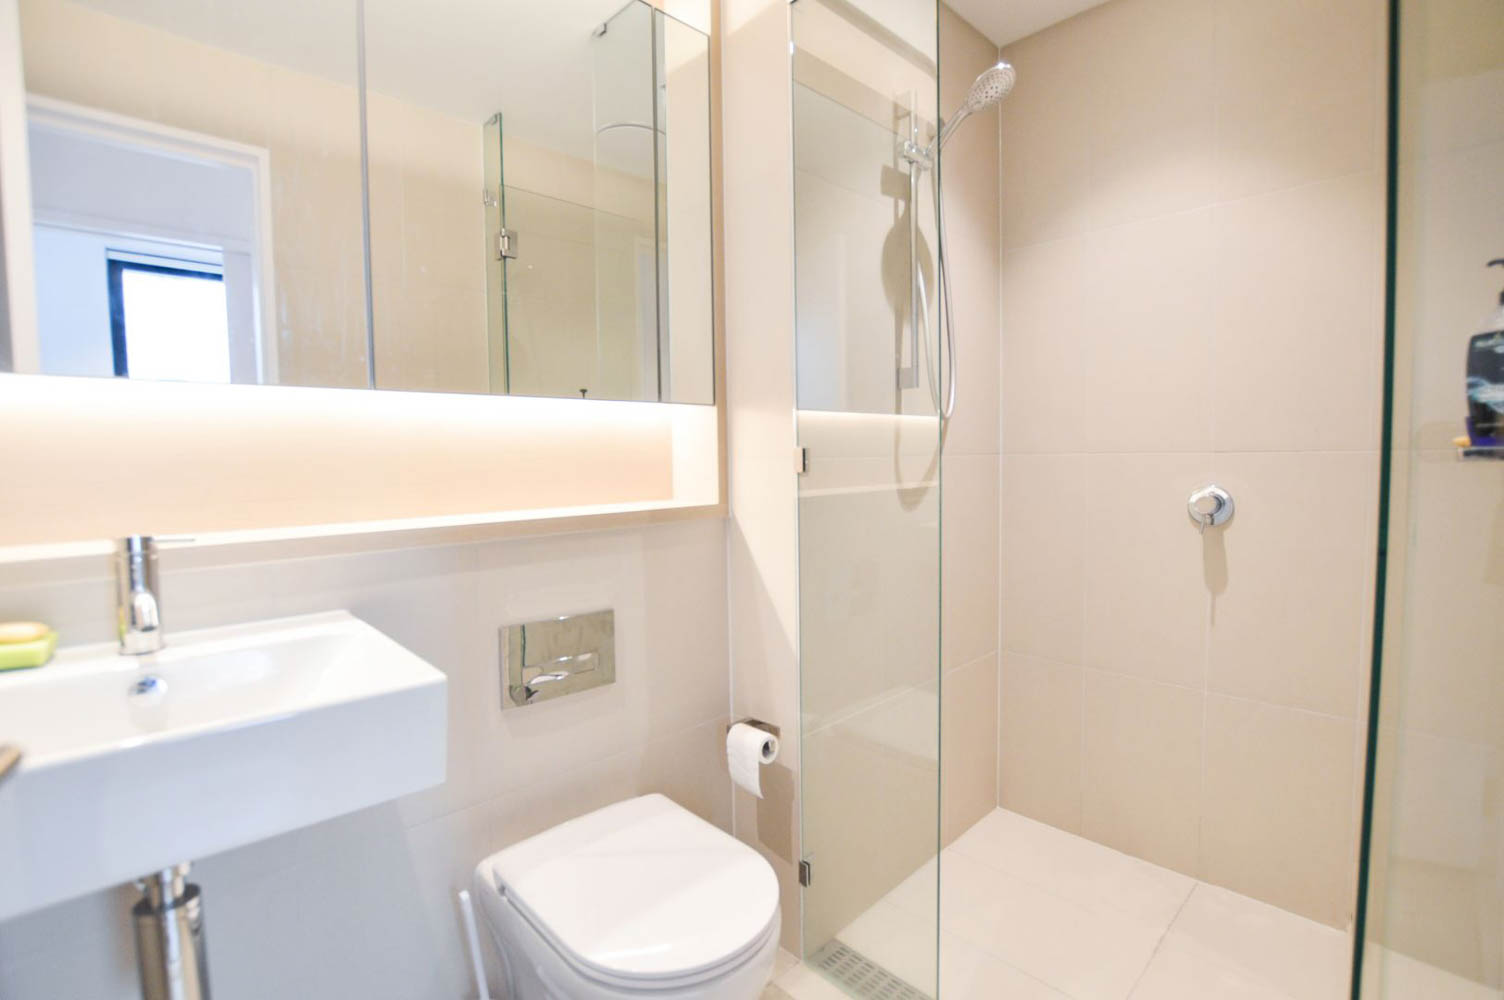 212-915-Collins-Street-Melbourne-Student-Accommodation-Melbourne-Bathroom-Unilodgers